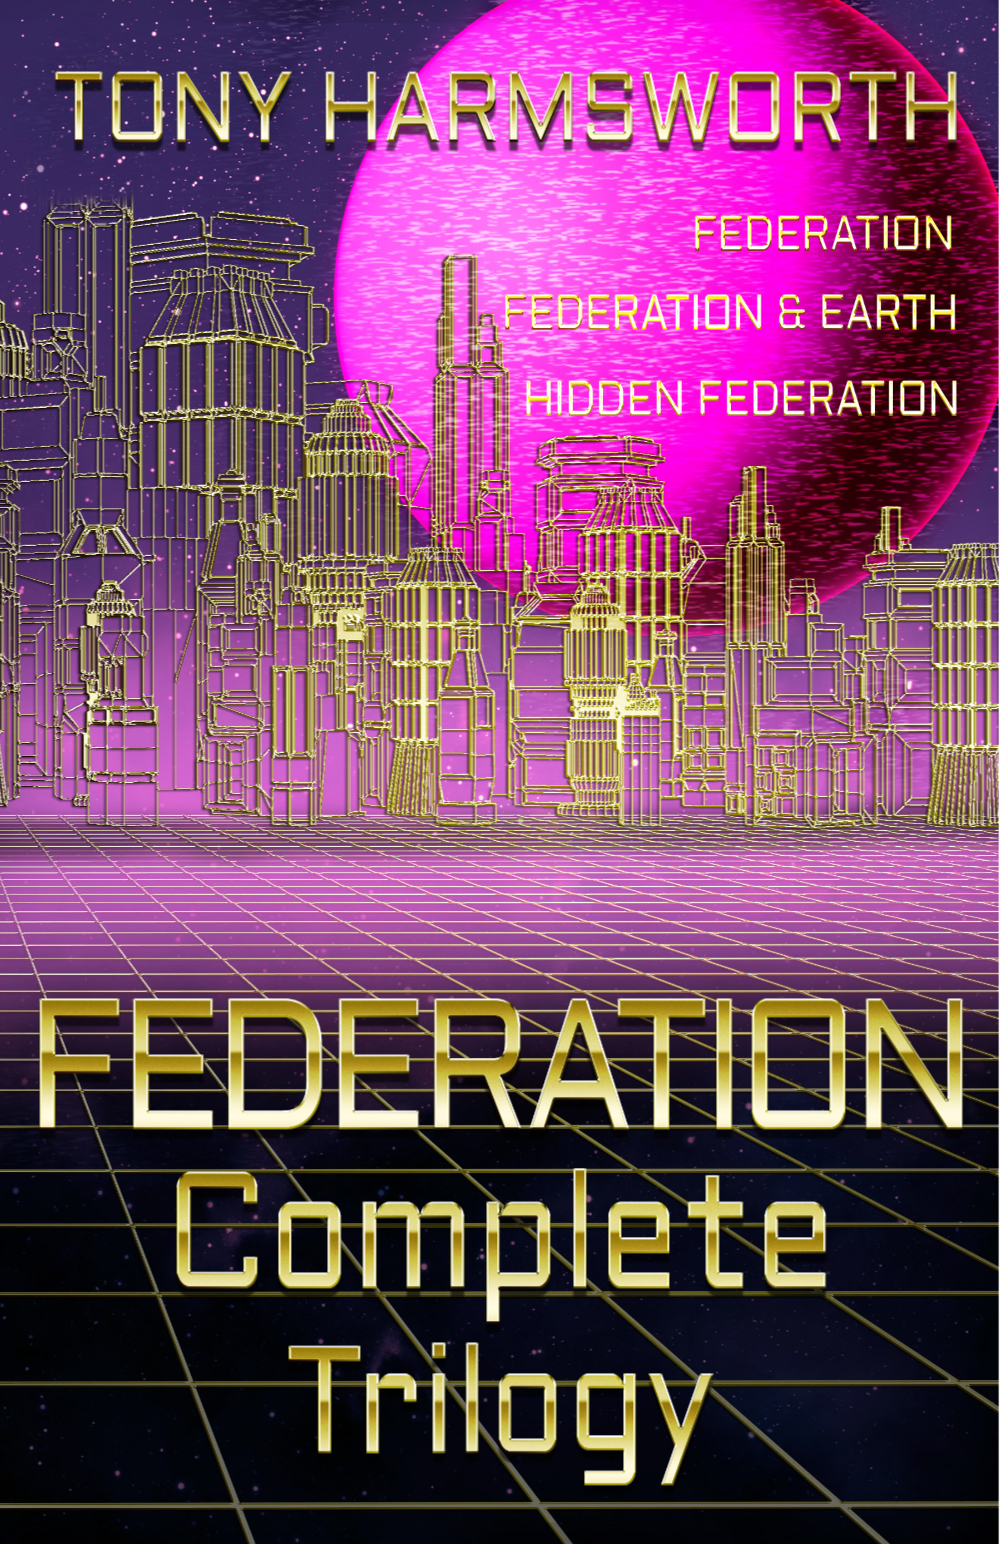 Complete Federation Trilogy